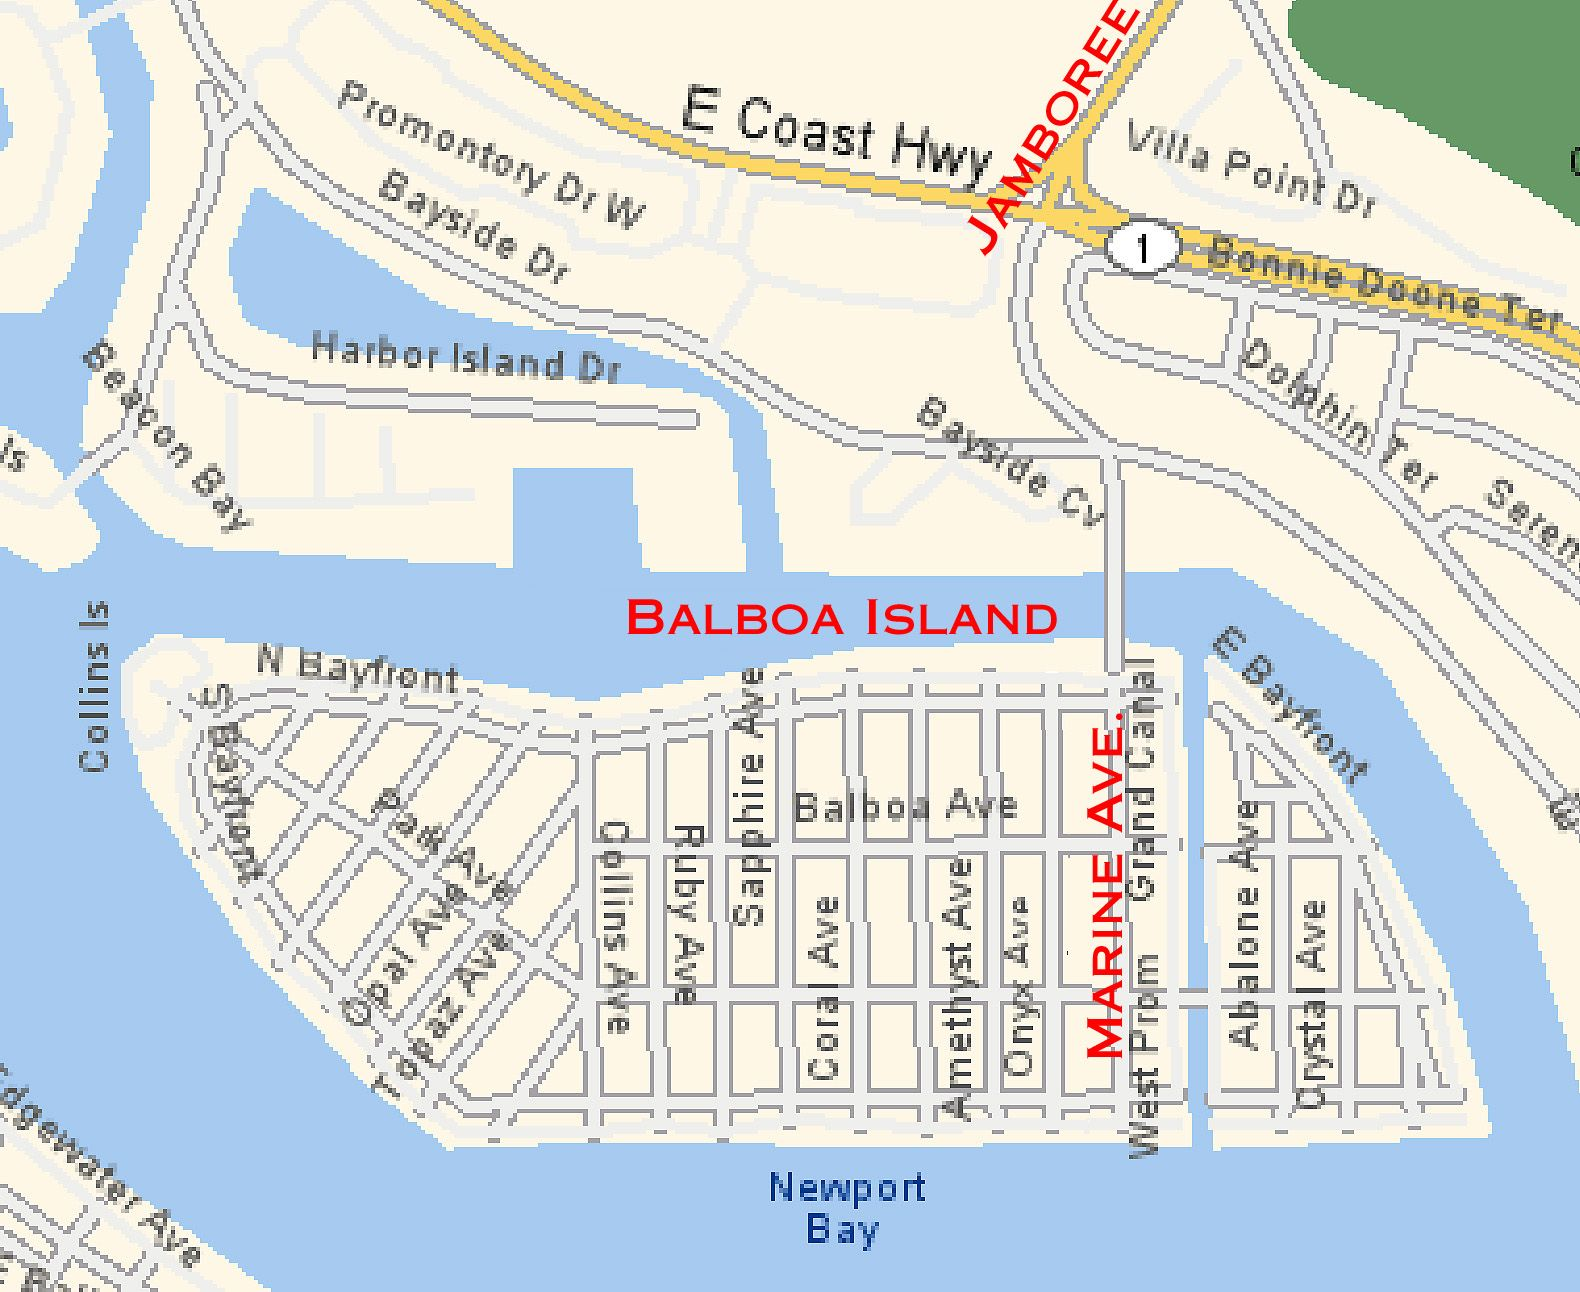 map of Balboa Island | Balboa Island and misc info | Pinterest